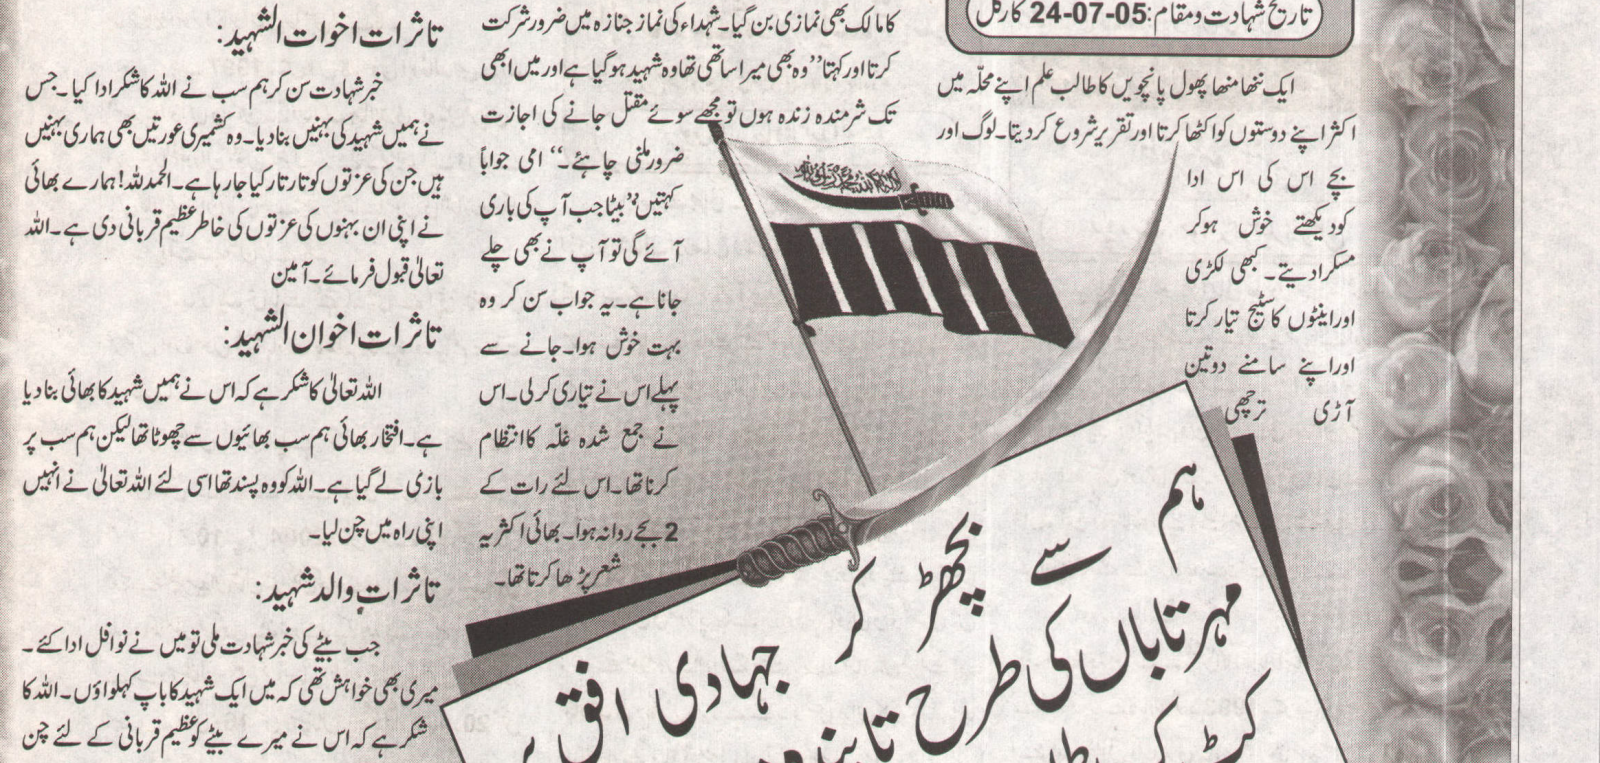 Lashkar-e-Taiba document with flag and sword